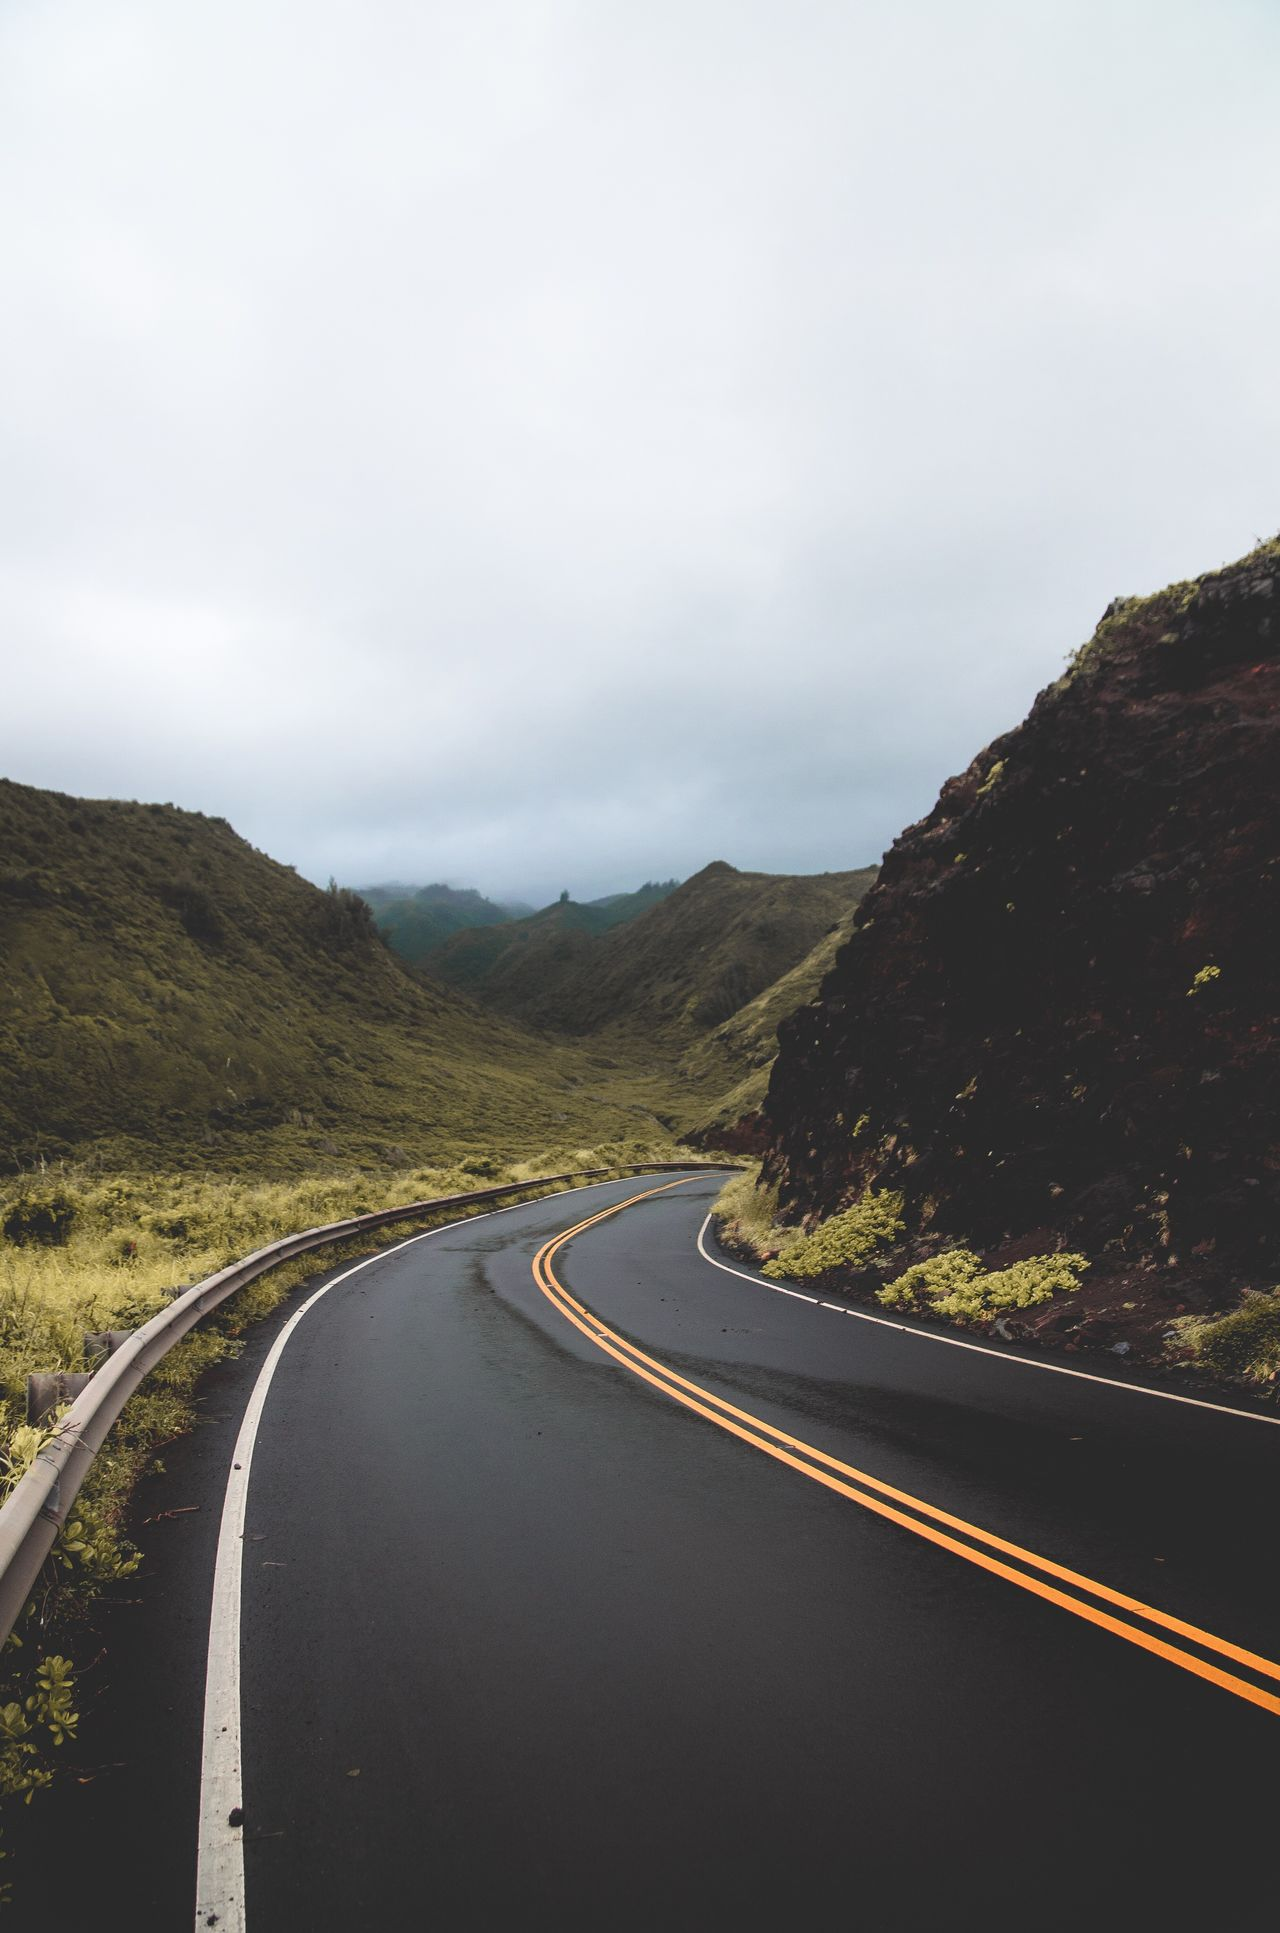 Maui roads. Road No People The Way Forward Beauty In Nature Maui Mauiphotography Nature Hawaii Outdoors Liveoutdoors Wanderlust Photography Photooftheday Photoshoot Artofvisuals Takemoreadventures Folkgood Visualsoflife Visualsgang ExploreEverything Exploretocreate Neverstopexploring  Adventure Moody Winding Road